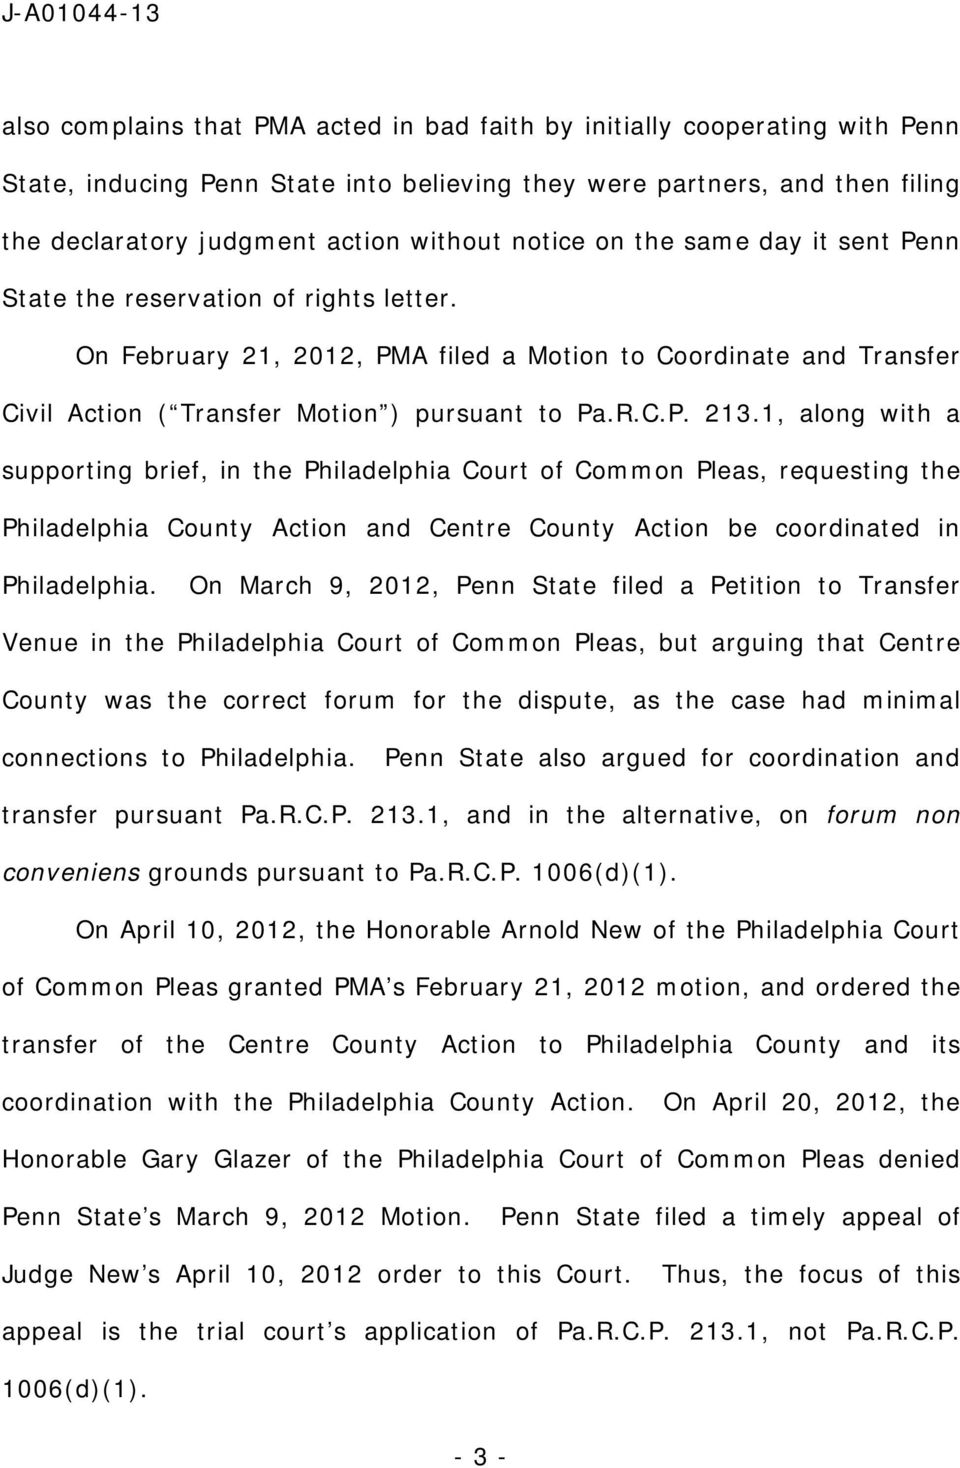 1, along with a supporting brief, in the Philadelphia Court of Common Pleas, requesting the Philadelphia County Action and Centre County Action be coordinated in Philadelphia.